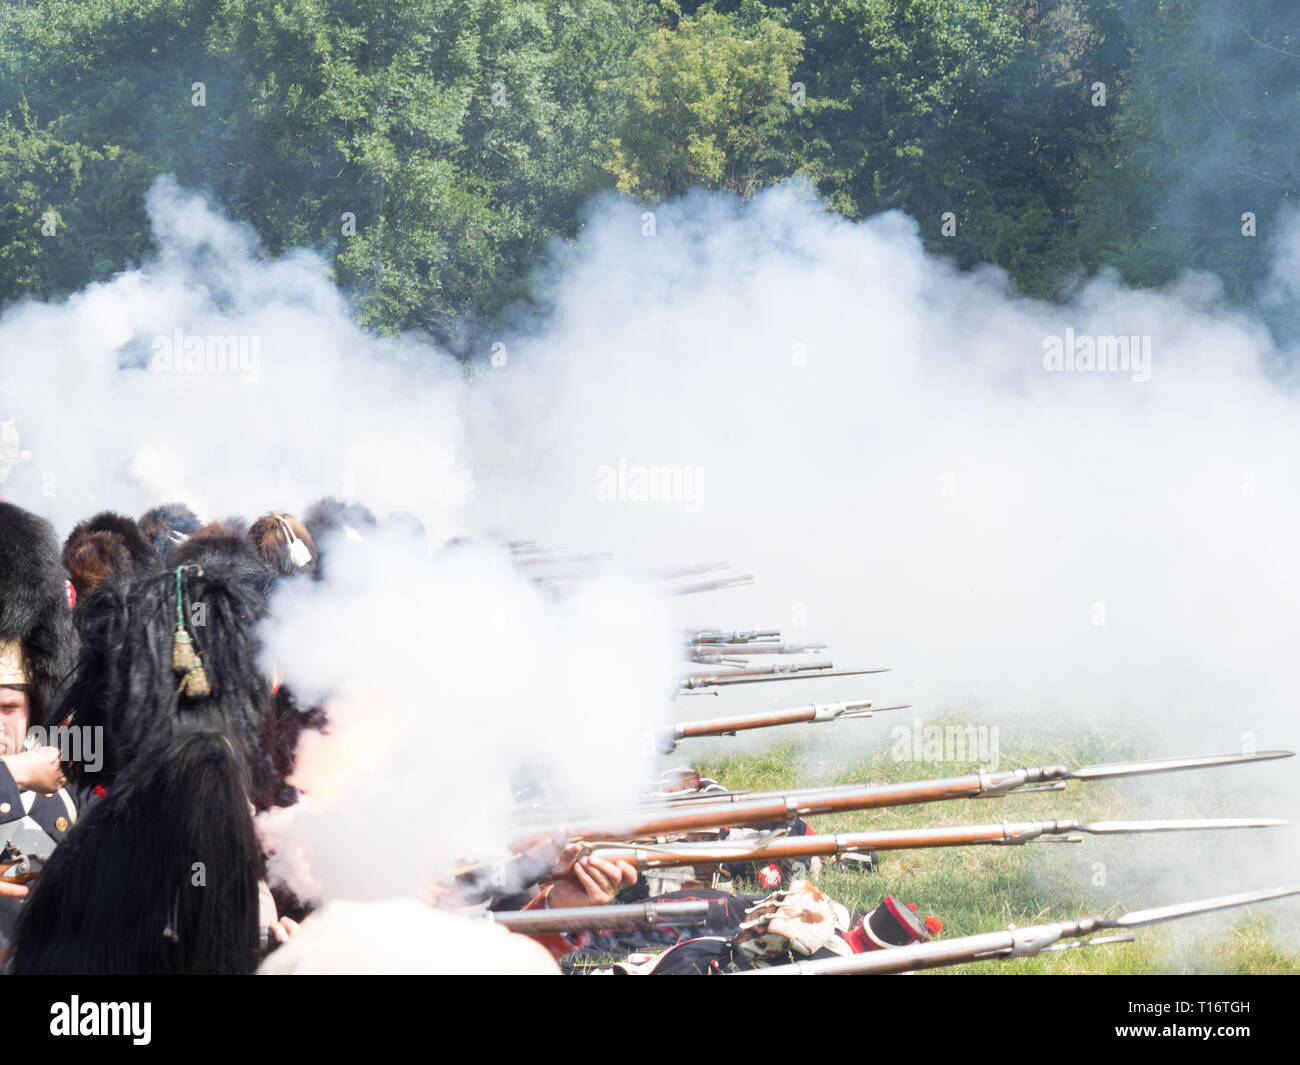 Waterloo, Belgium - June 18 2017: French soldiers of the imperial guard firing their muskets. - Stock Image